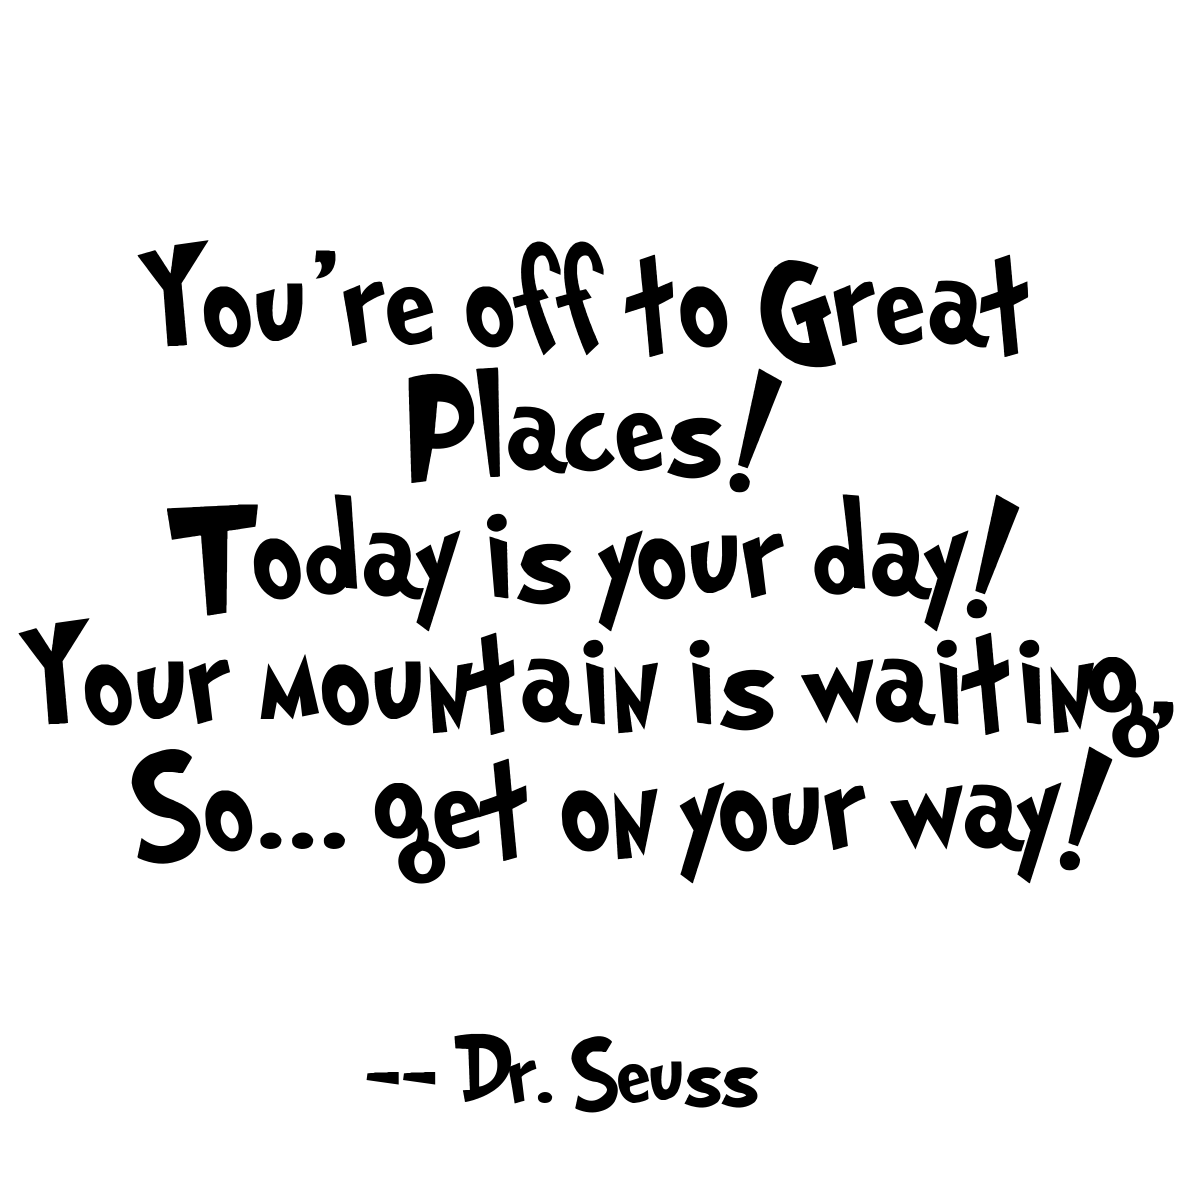 You're off to Great Places! Today is your day! Your